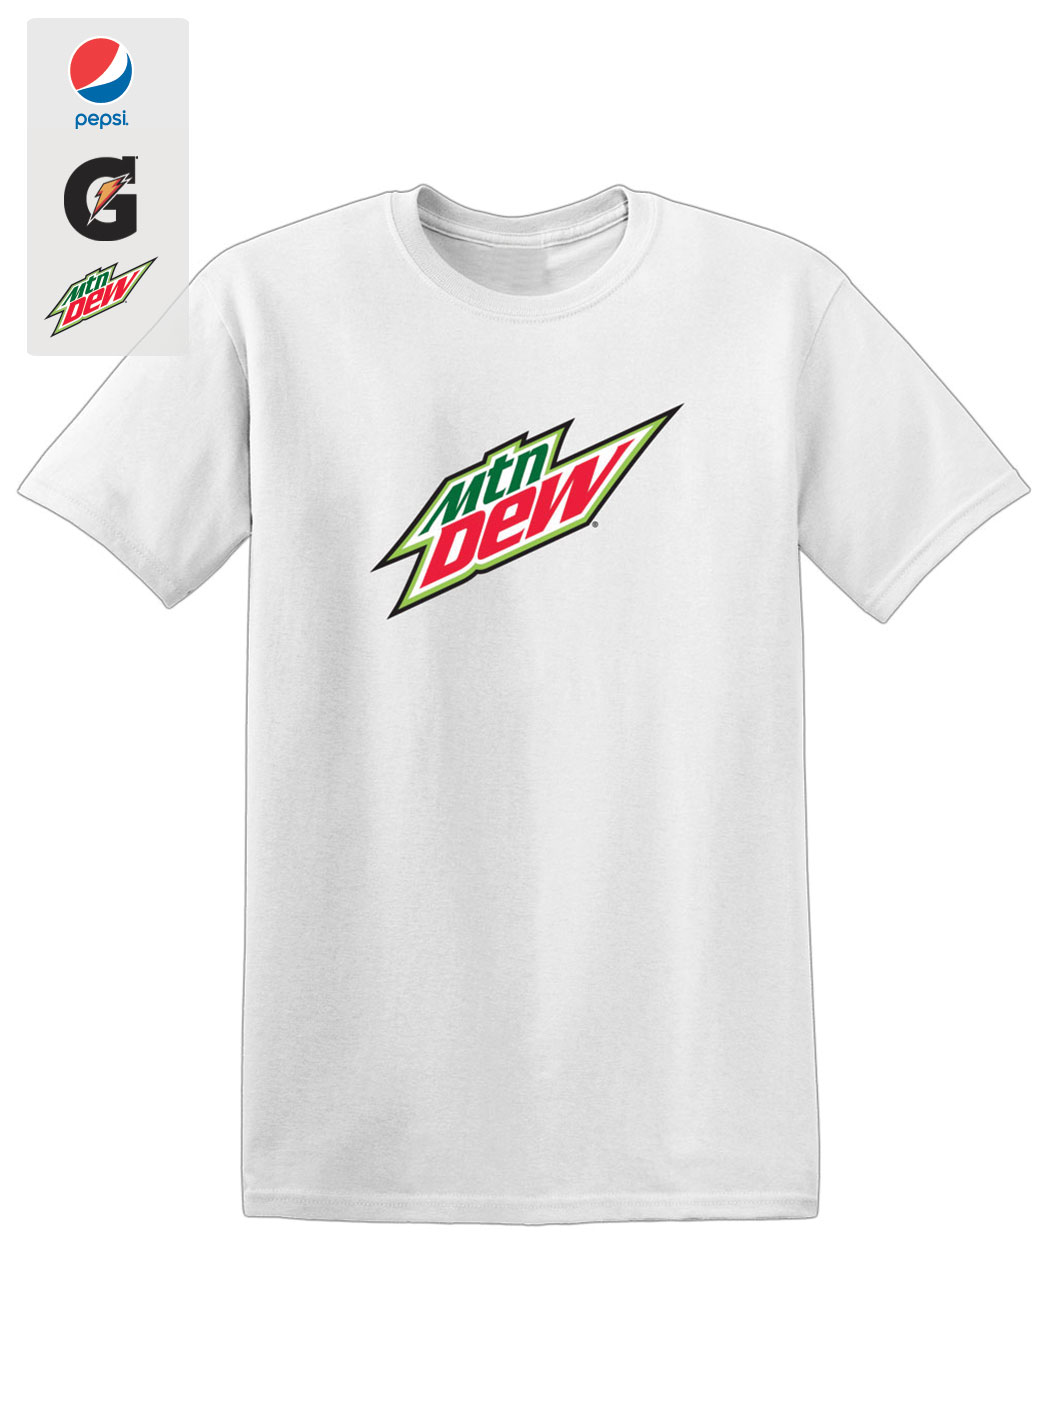 White Tshirt - Login For Special $